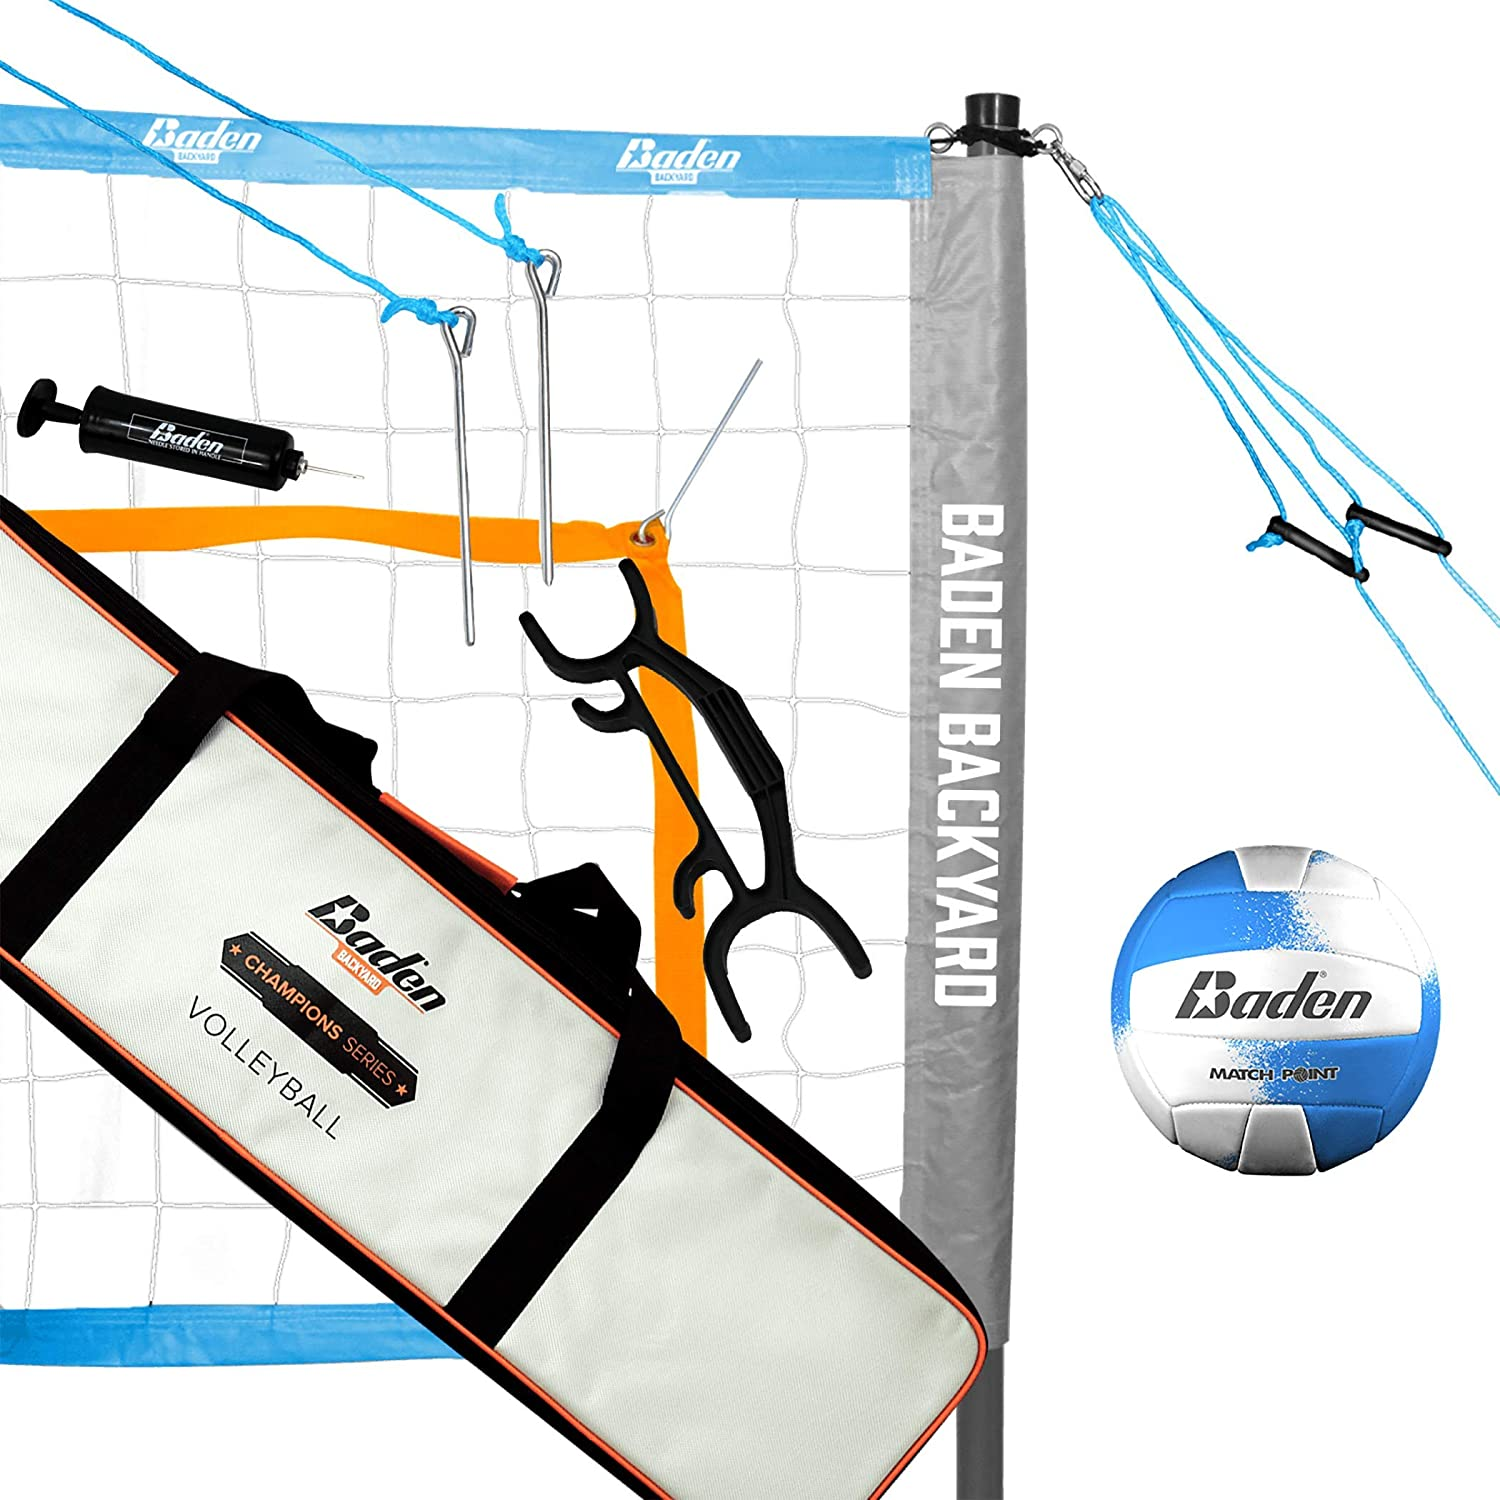 Baden Champions Volleyball Set : Volleyball Net Systems : Sports & Outdoors